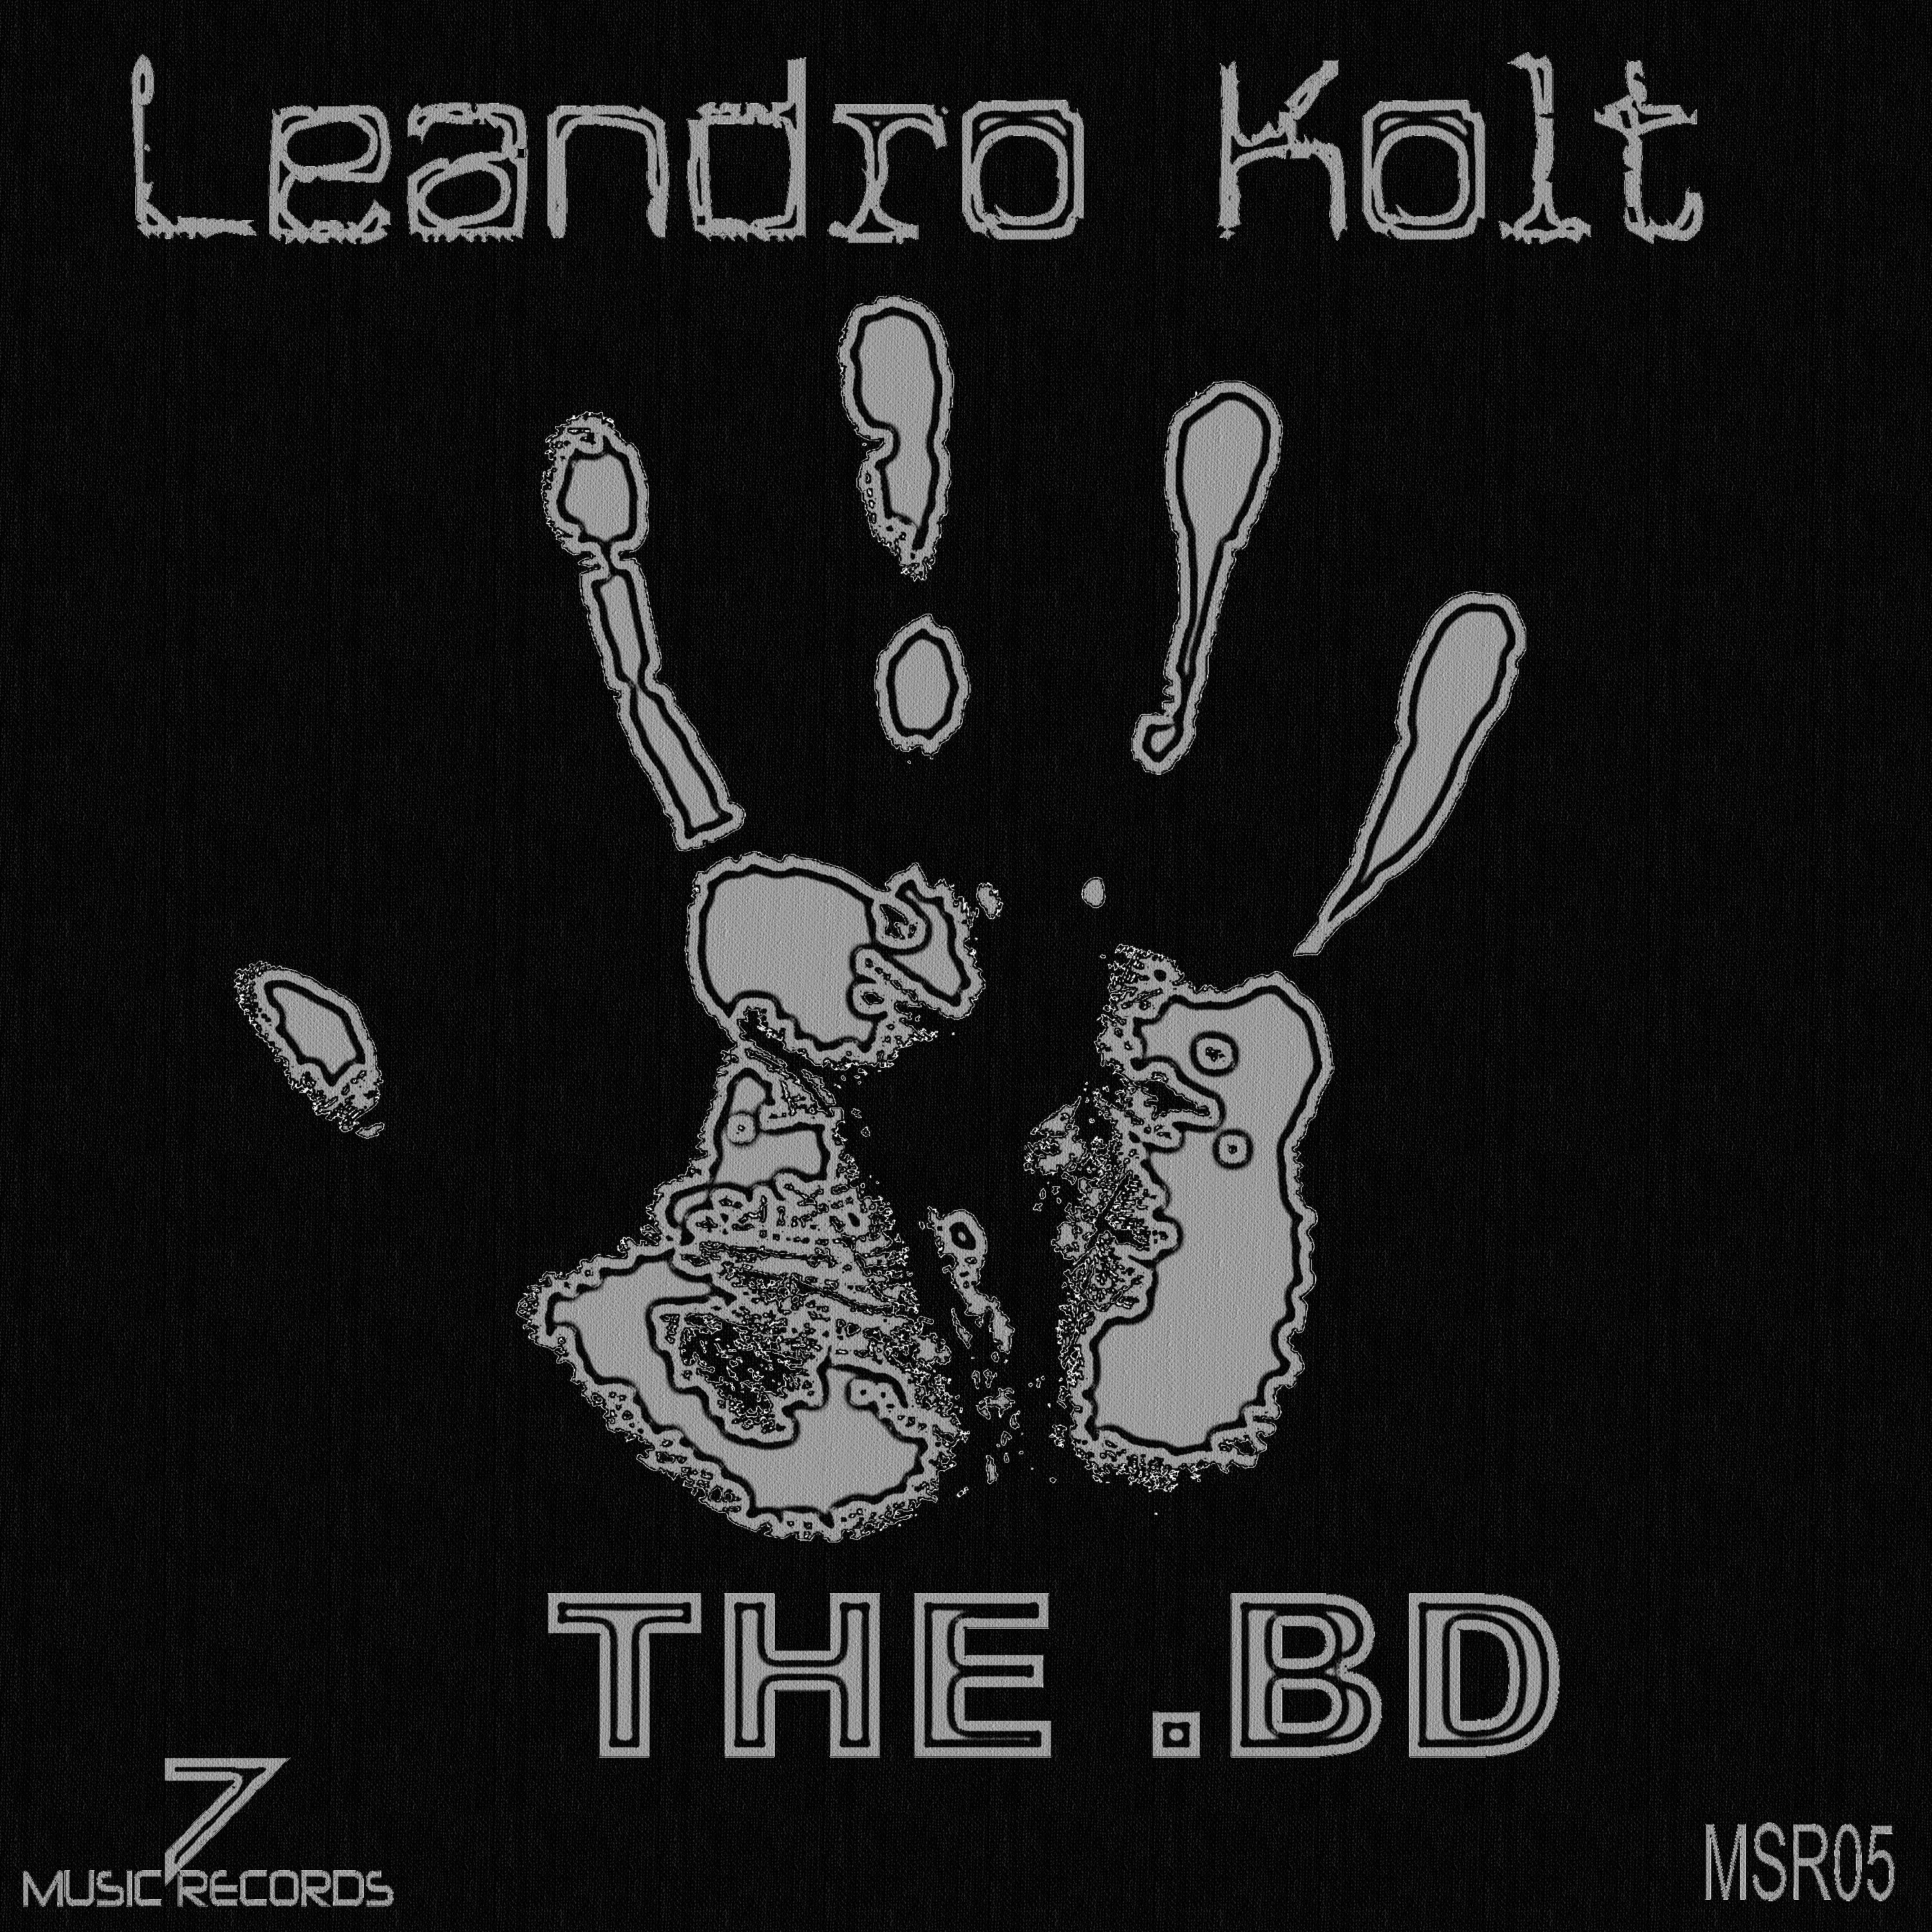 Leandro Kolt - The BD (Original mix)